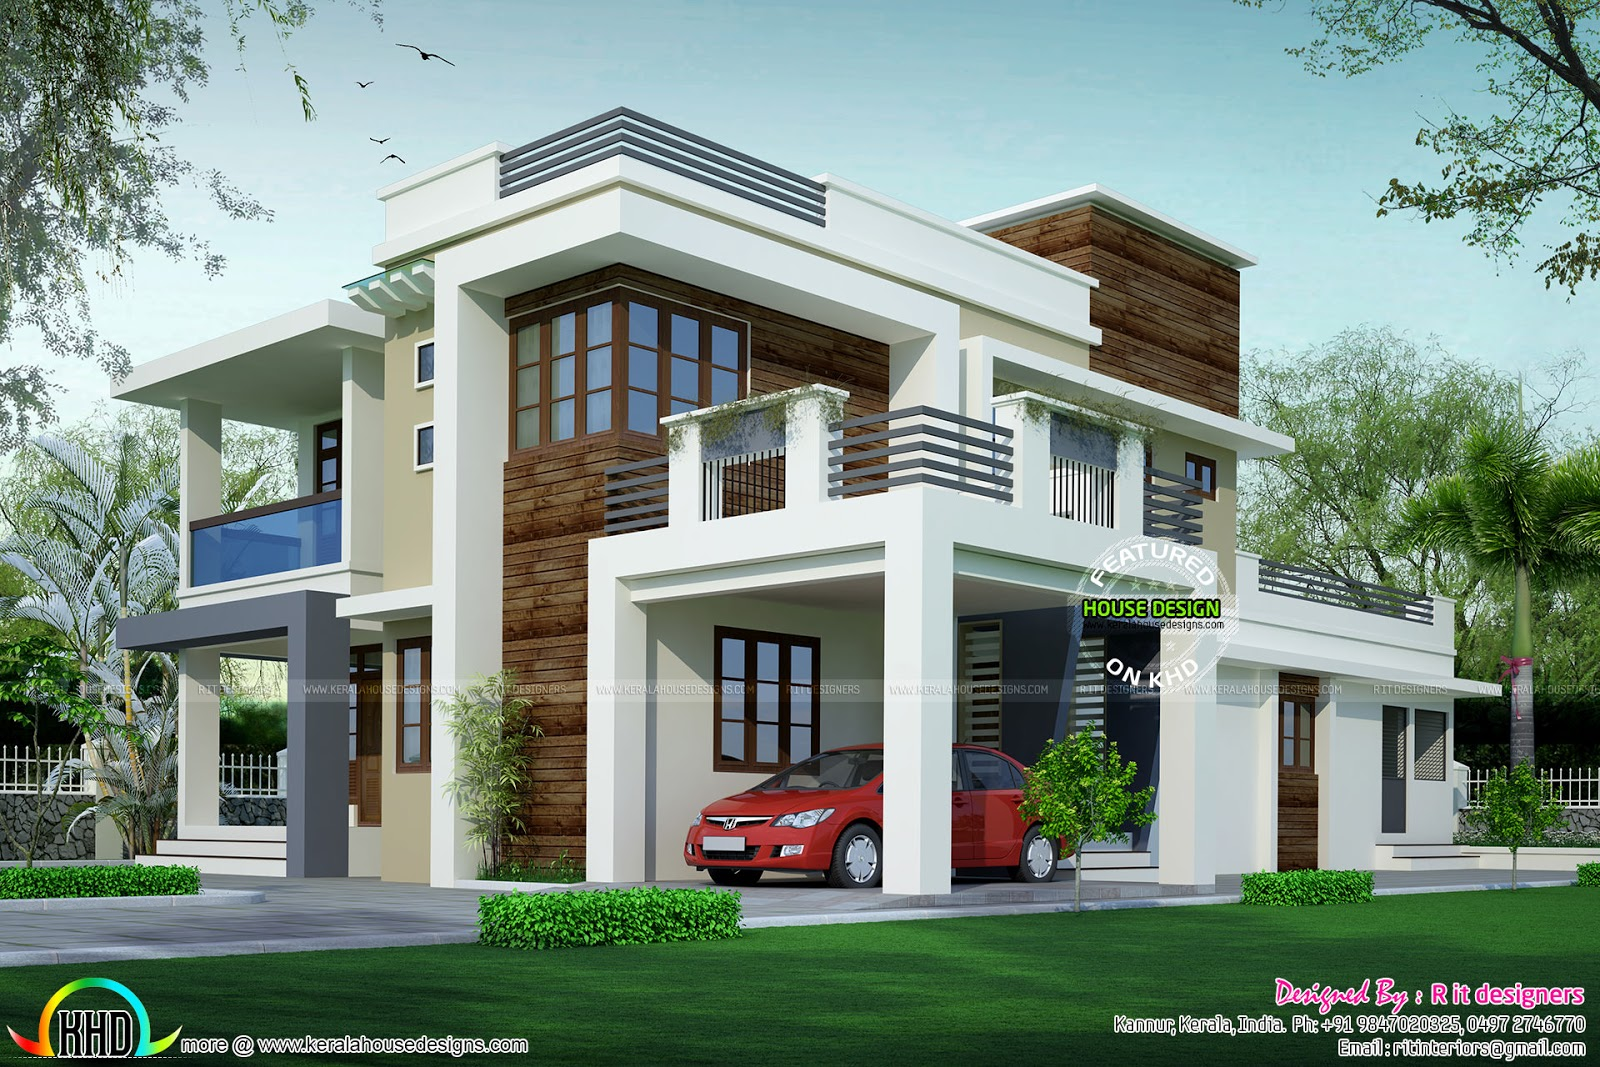 House design contemporary model kerala home design and New model contemporary house